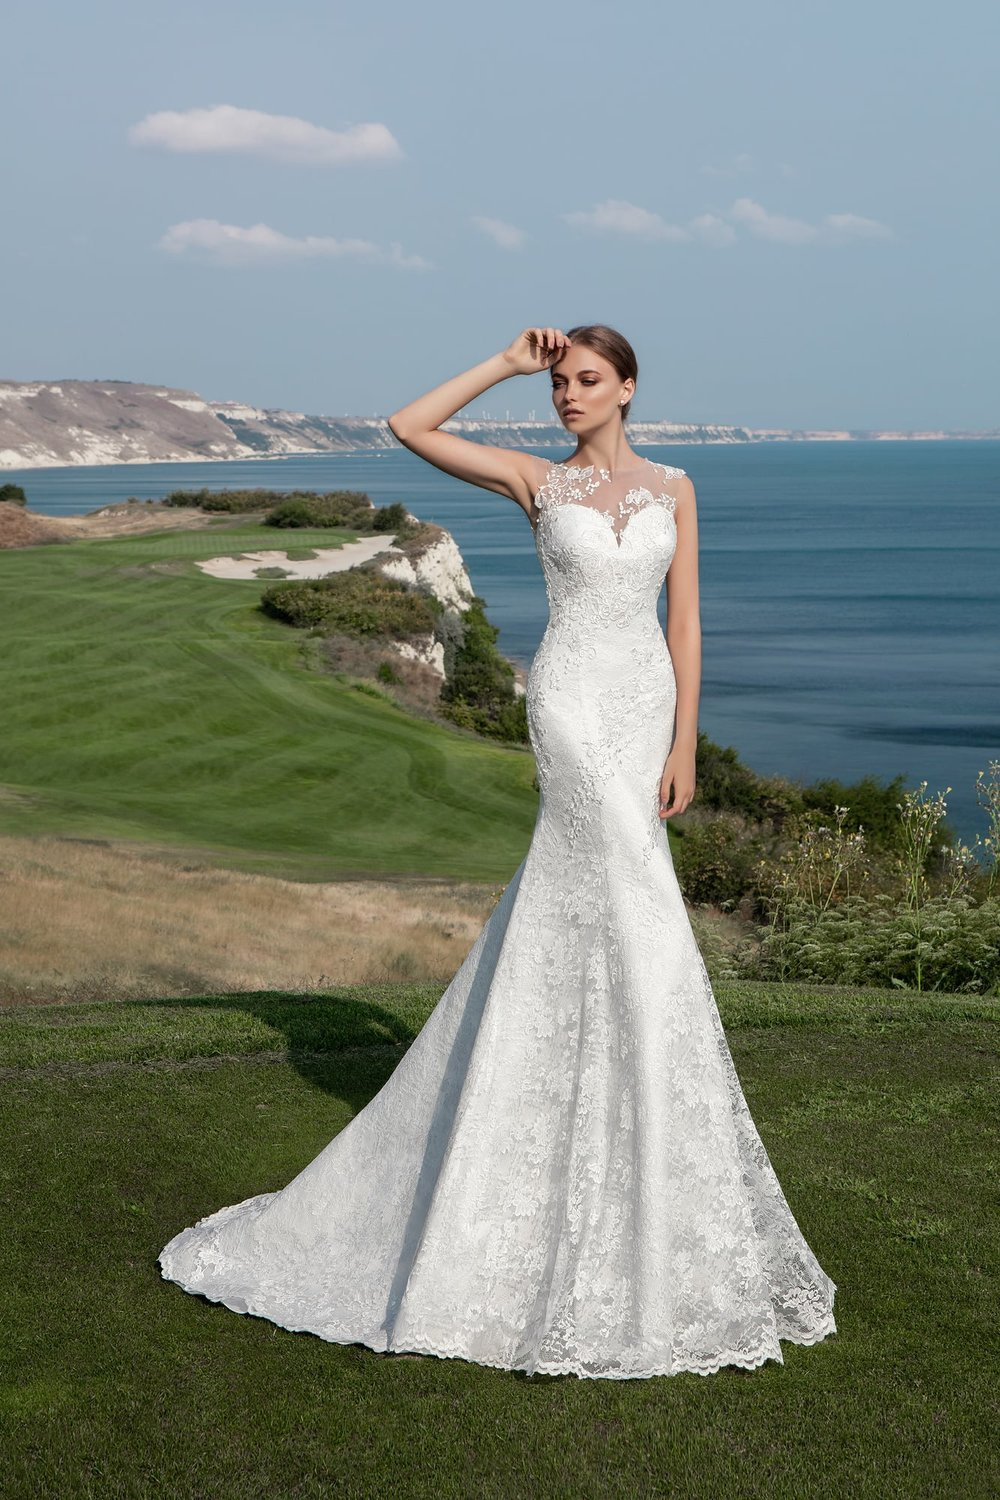 ANTILA wedding dress $800